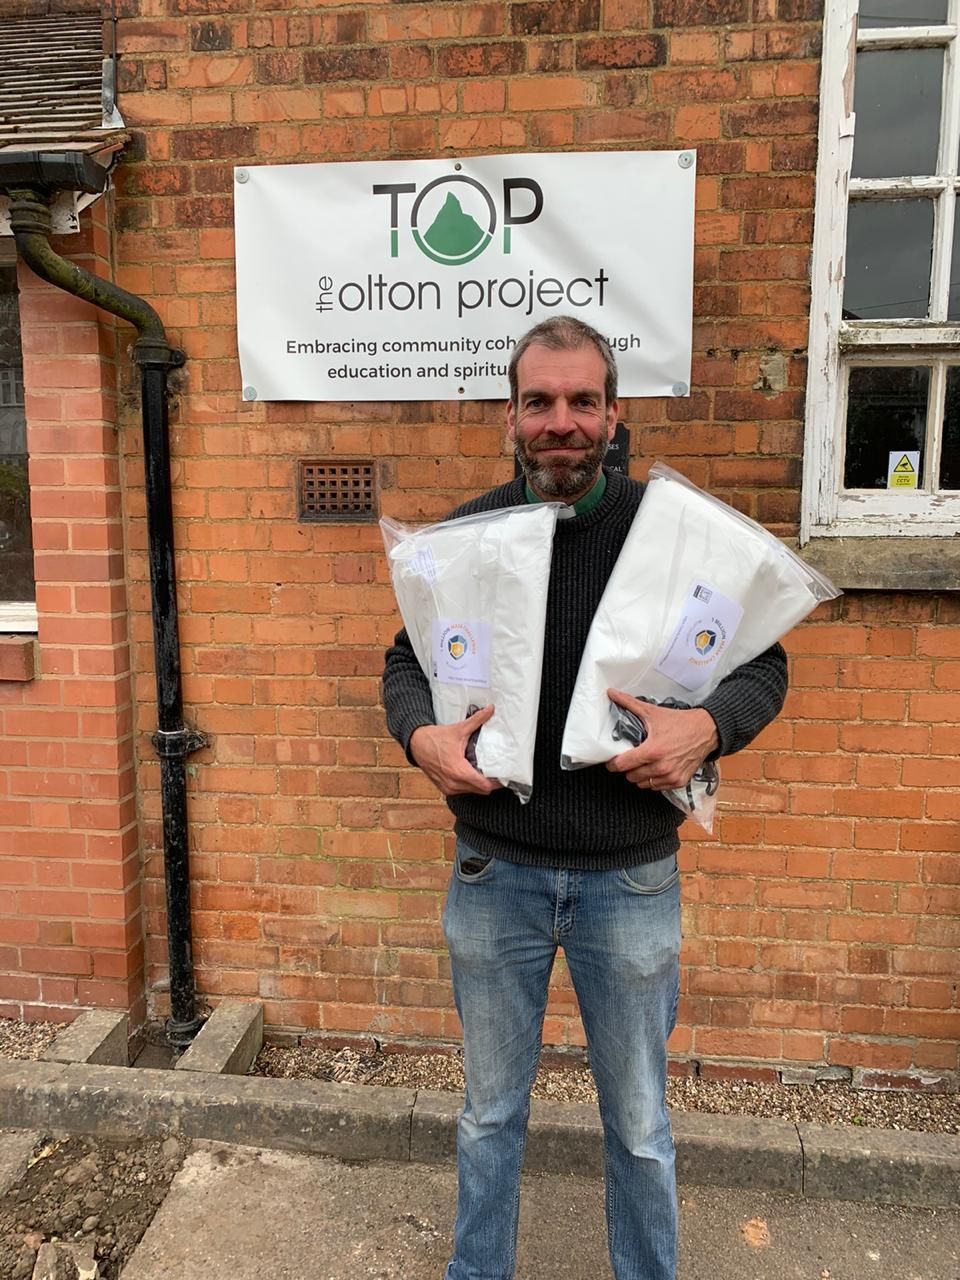 Reverend Dom collecting his mask kits from TOP.